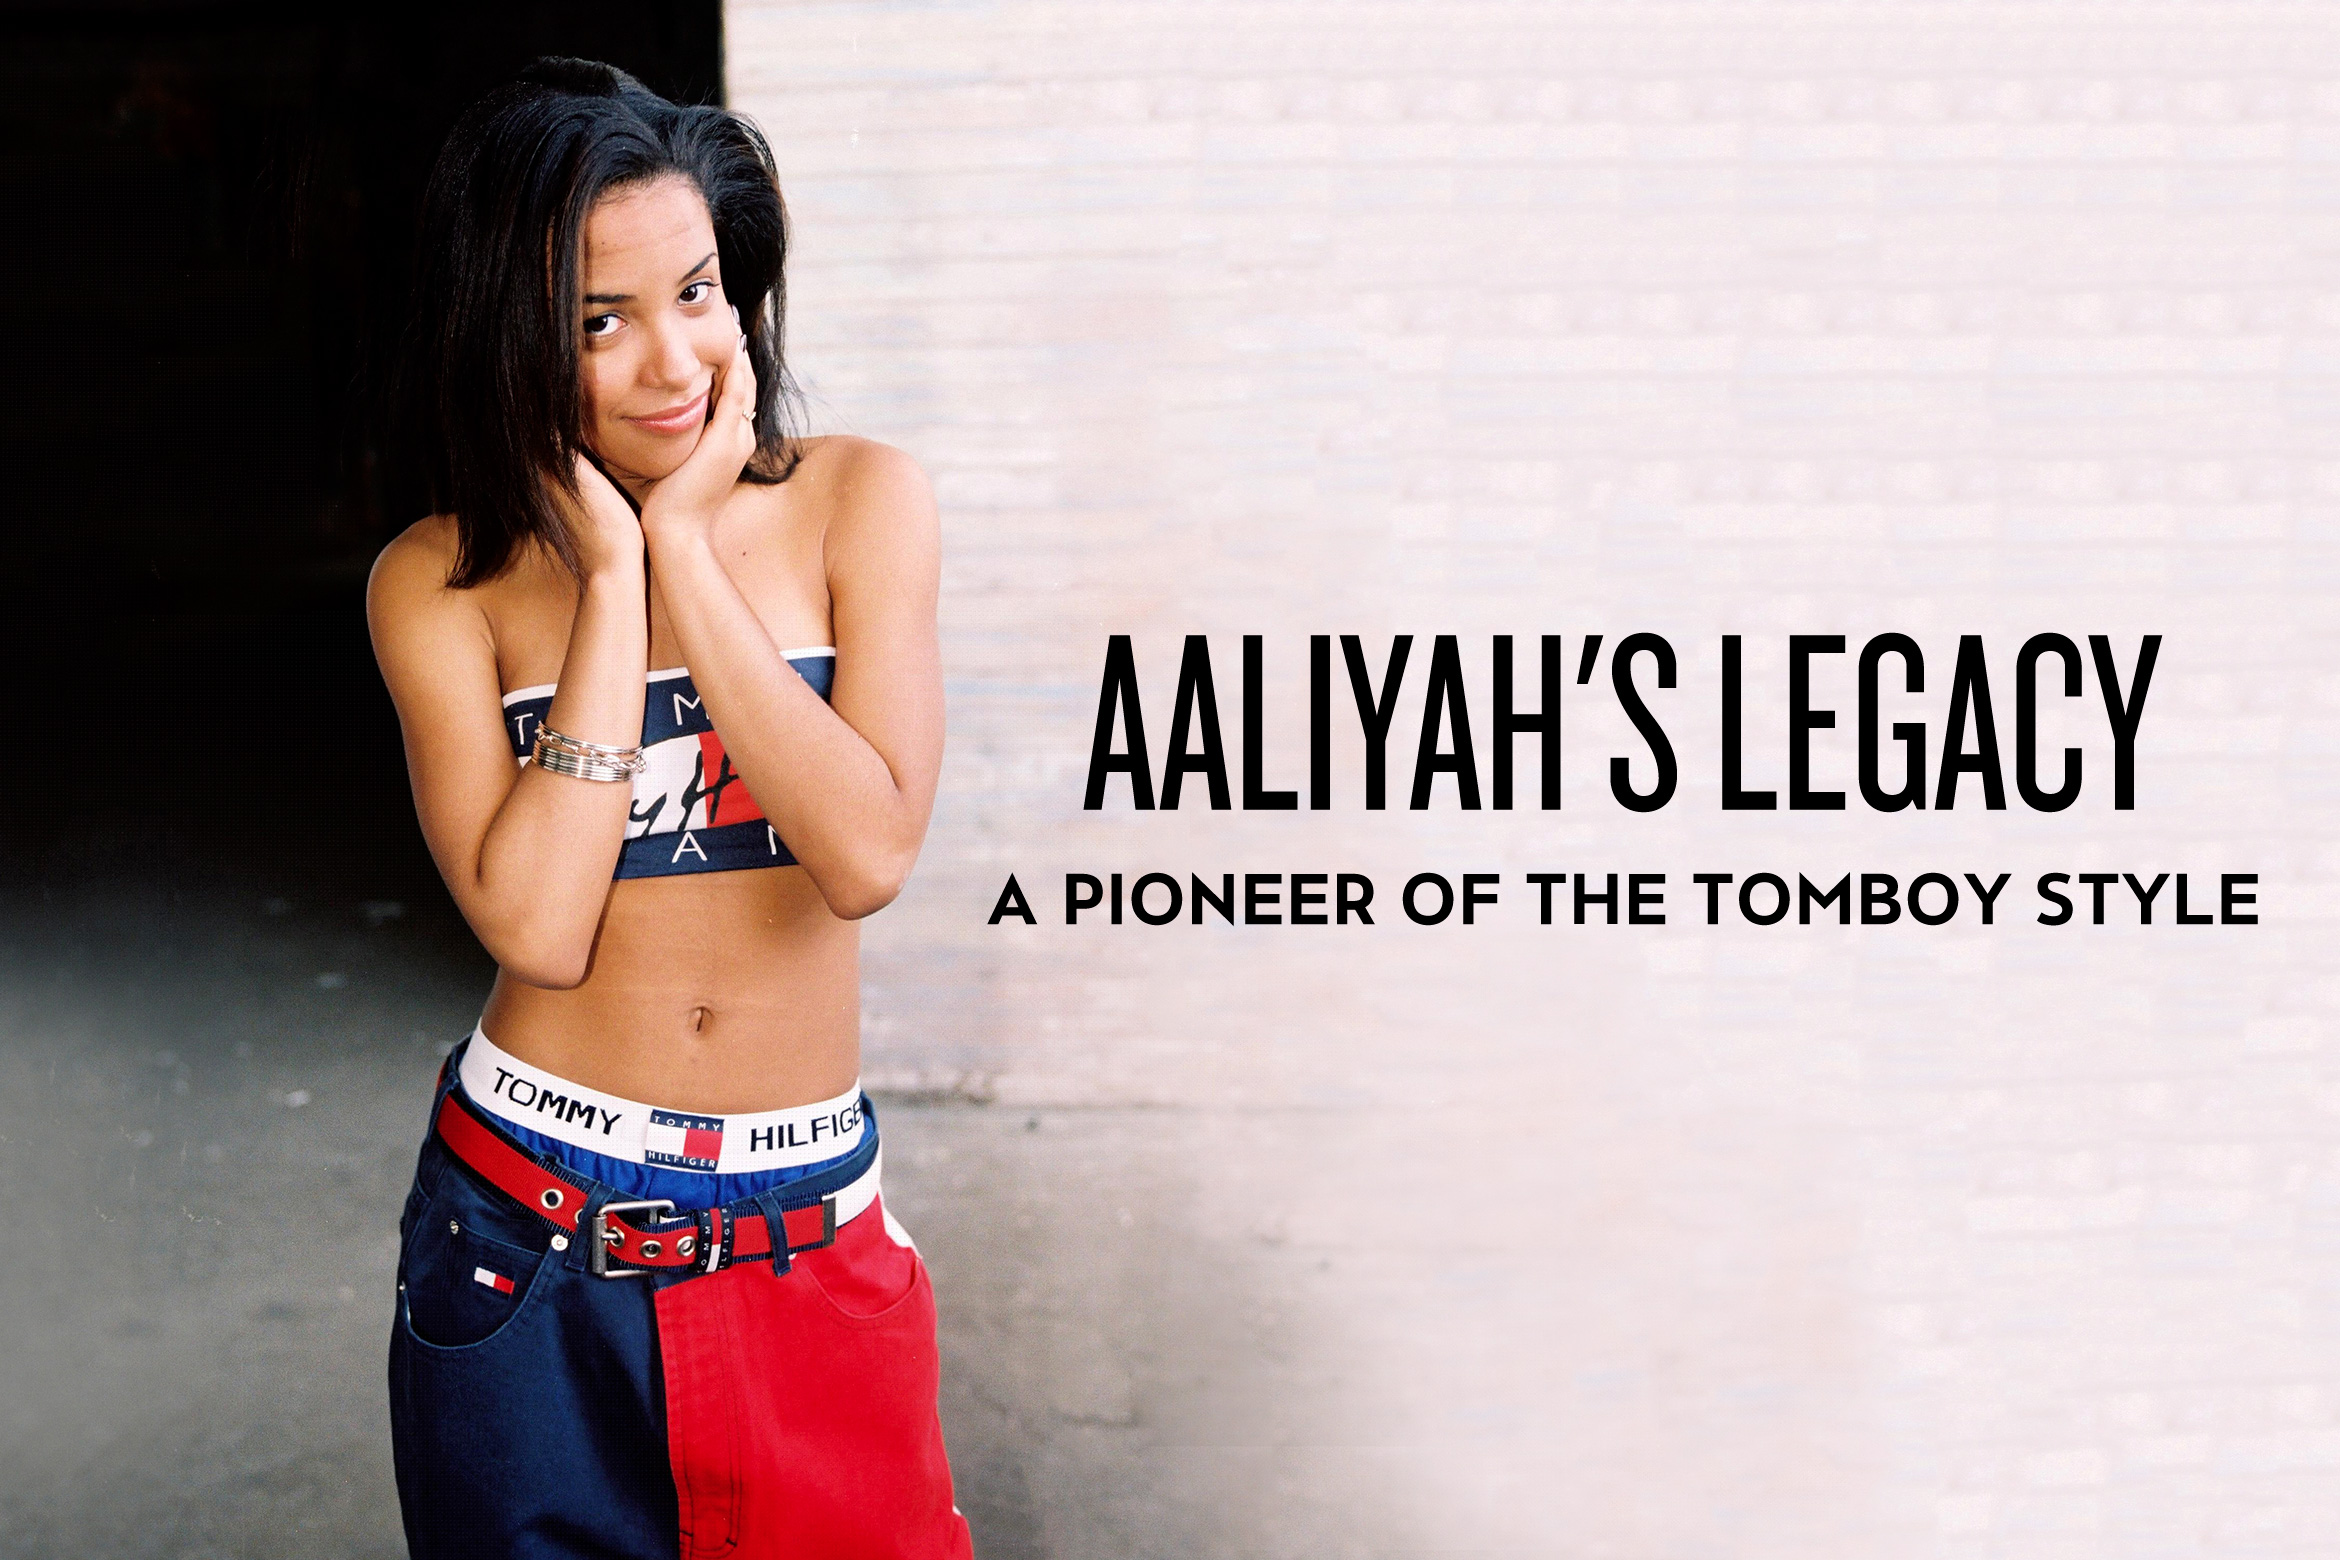 Aaliyah's Legacy: A Pioneer of the Tomboy Style